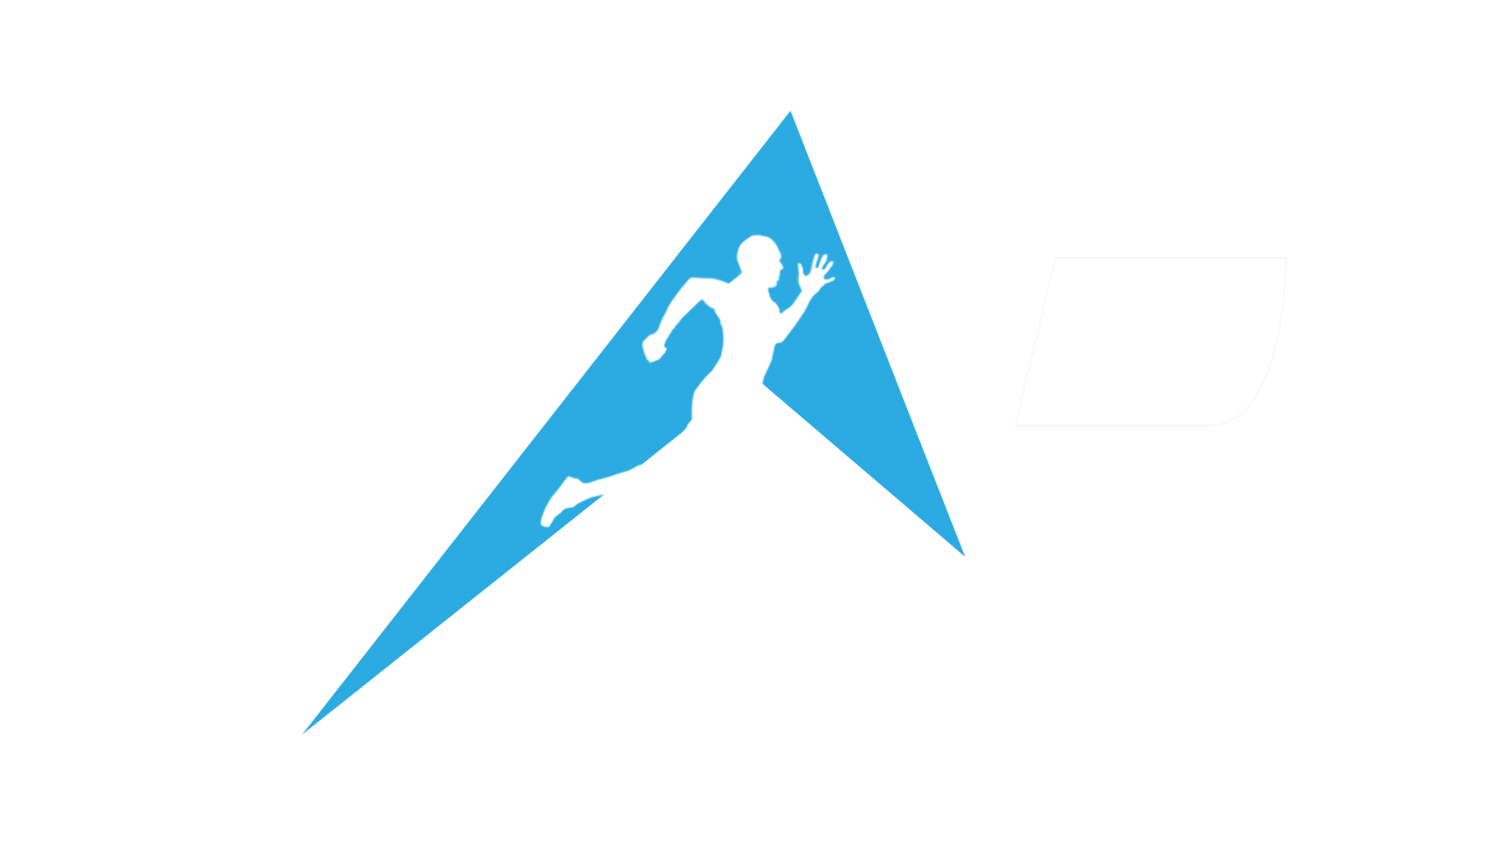 Holistic athlete development